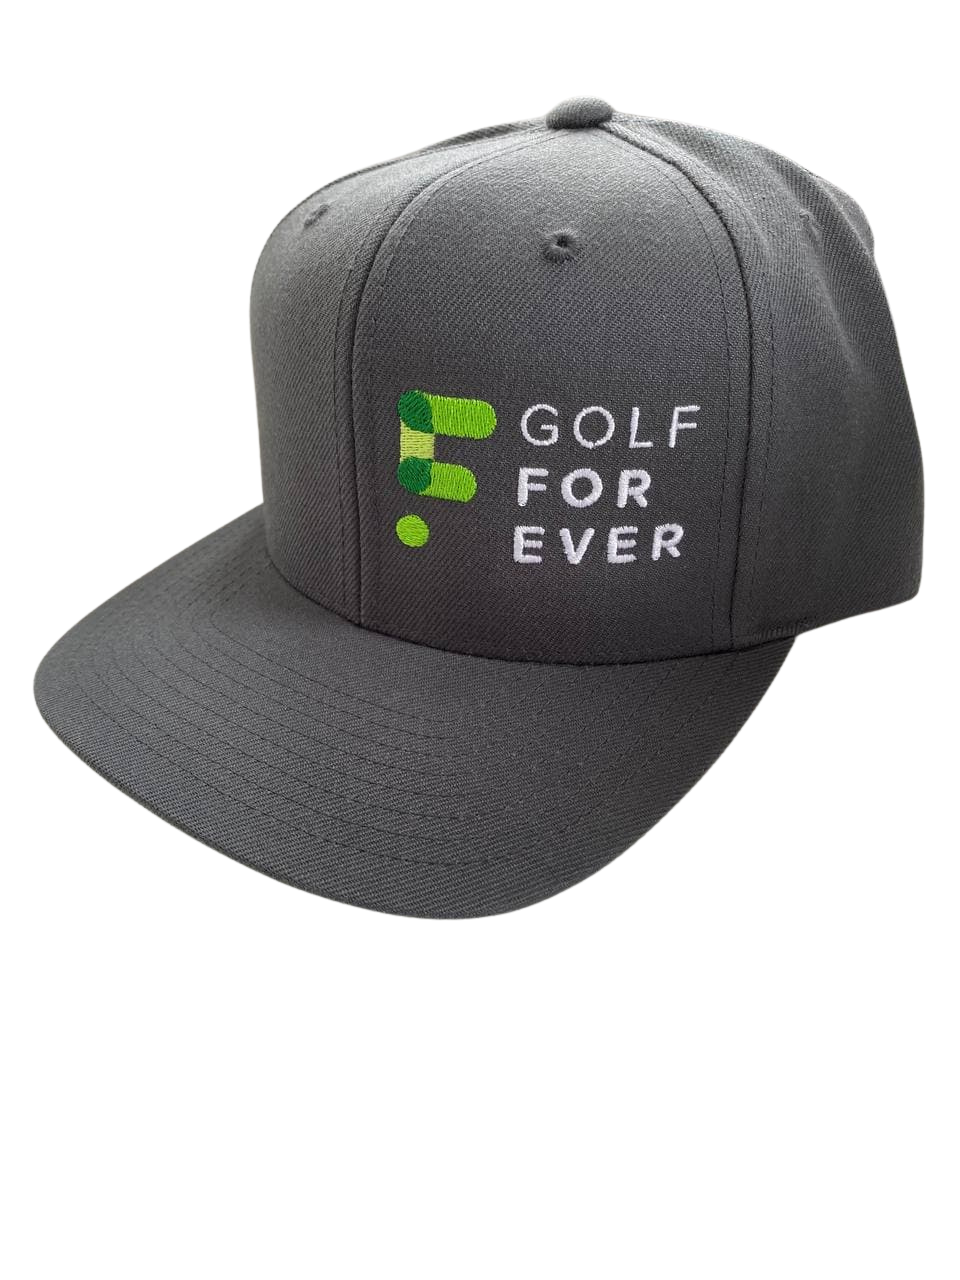 GOLFFOREVER Hat - Solid Gray